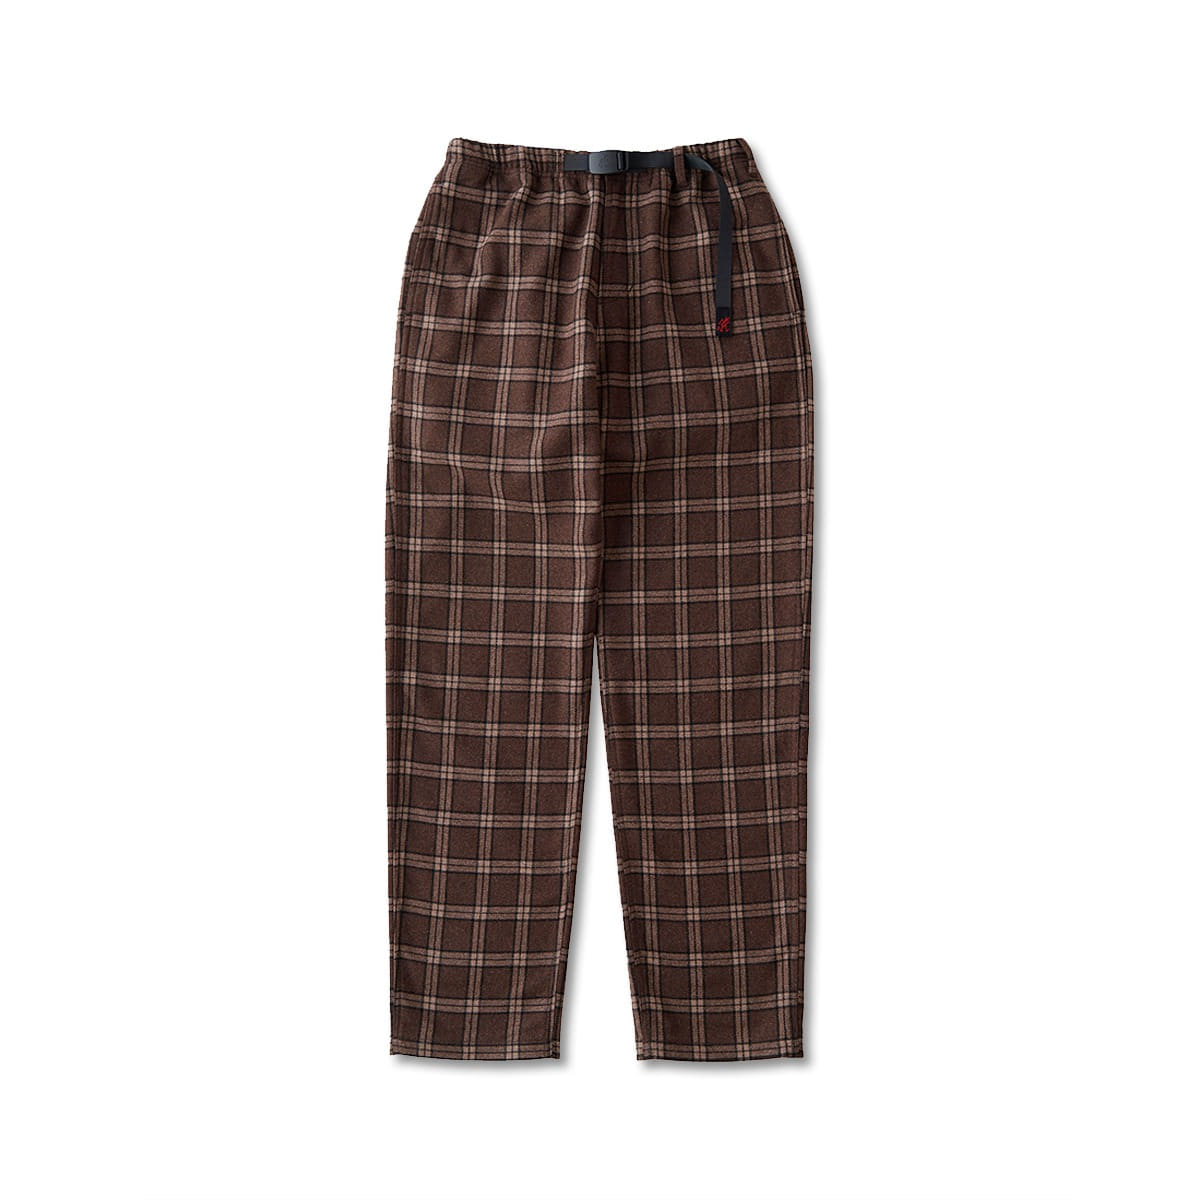 [GRAMICCI] WOOL BLEND GRAMICCI PANTS 'BROWN CHECK'